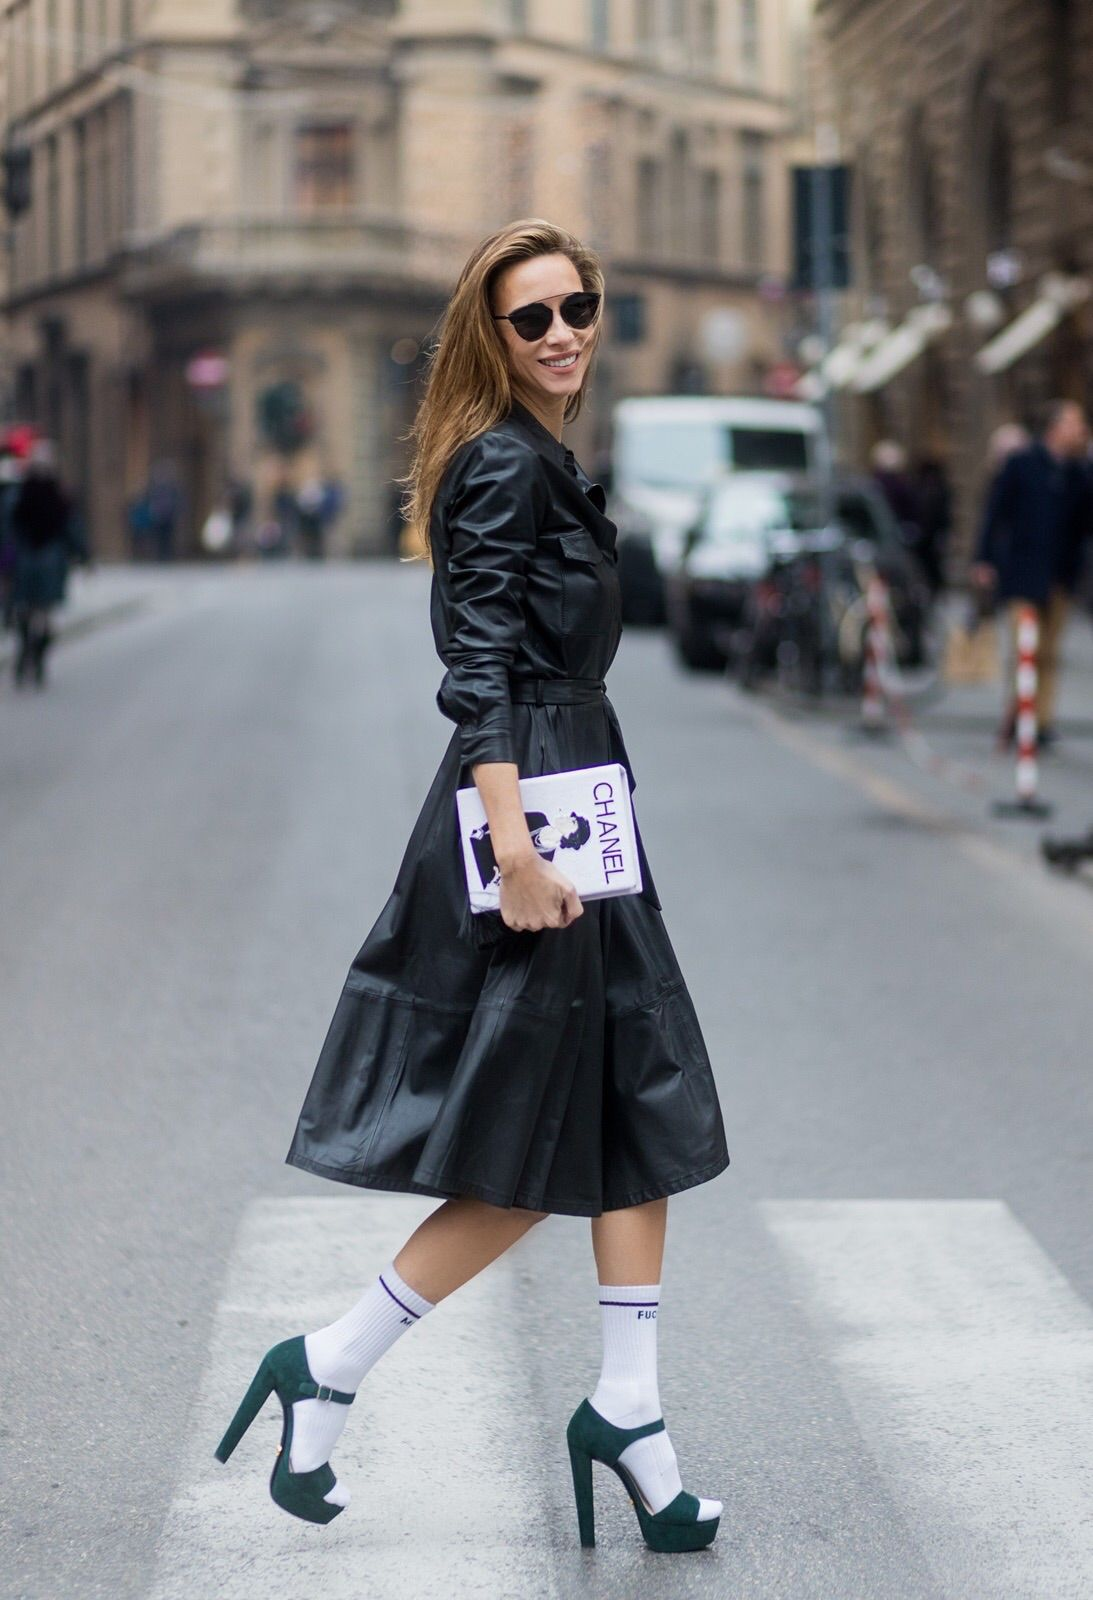 b93fc577 FLORENCE, ITALY - JANUARY 11: German fashion blogger and model Alexandra  Lapp, wearing